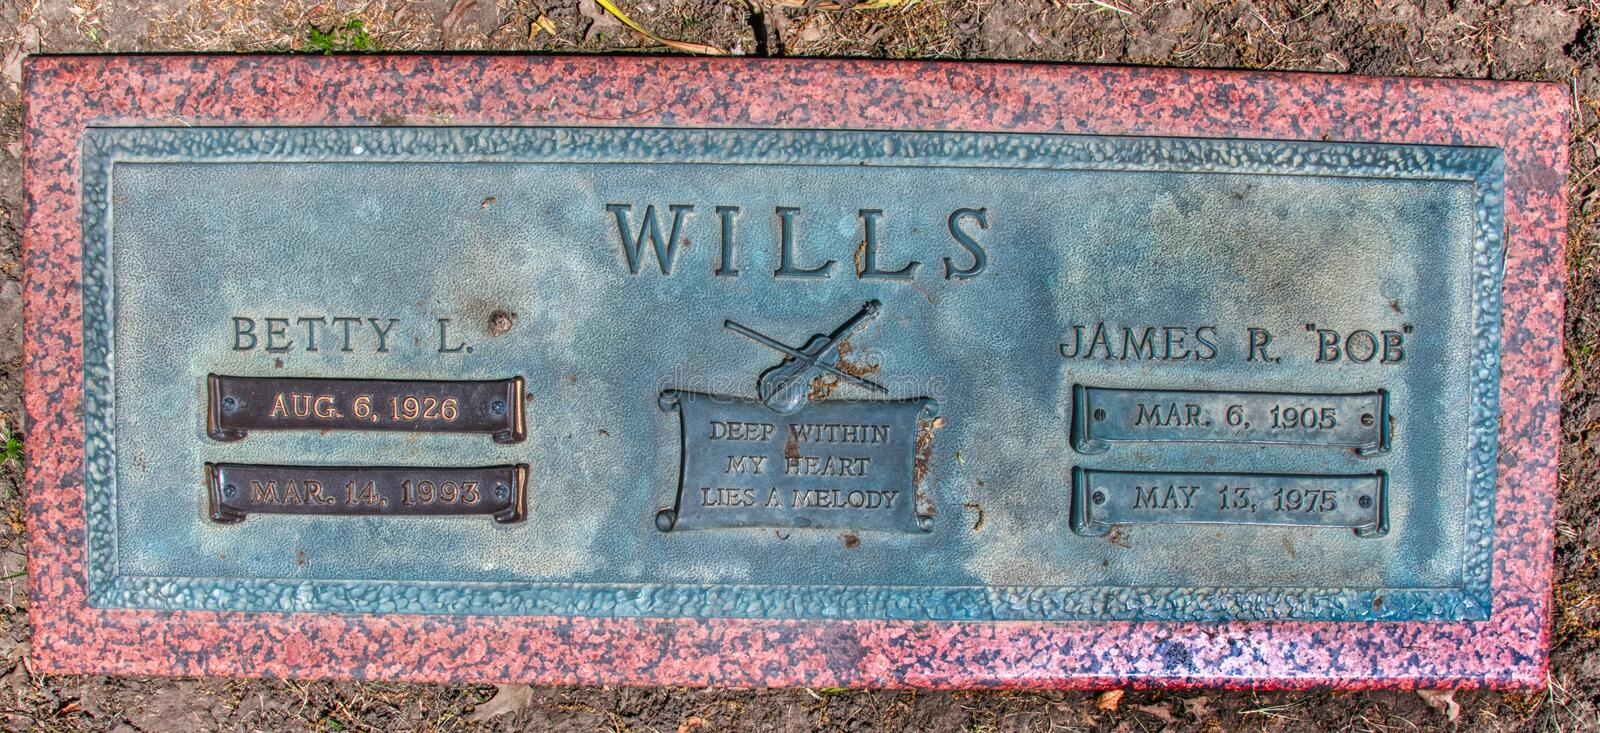 Tombstone Close Up of Wester Swing Music Bob Wills in Tulsa Oklahoma. The man who put Wester Swing on the radio and perhaps Tulsa on the map, fiddler and singer stock photography